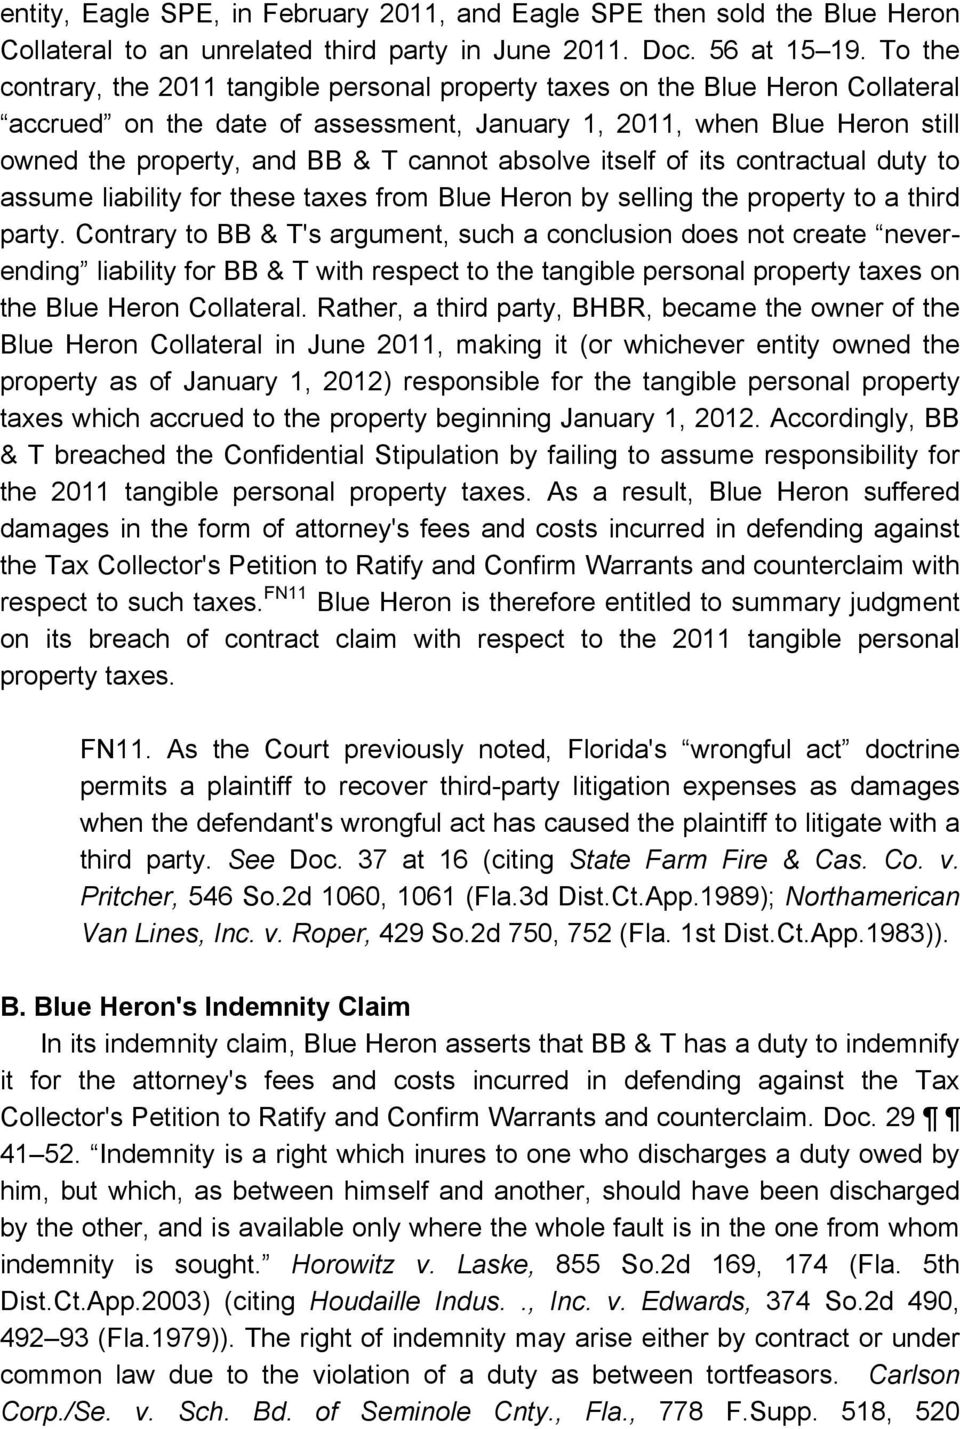 absolve itself of its contractual duty to assume liability for these taxes from Blue Heron by selling the property to a third party.